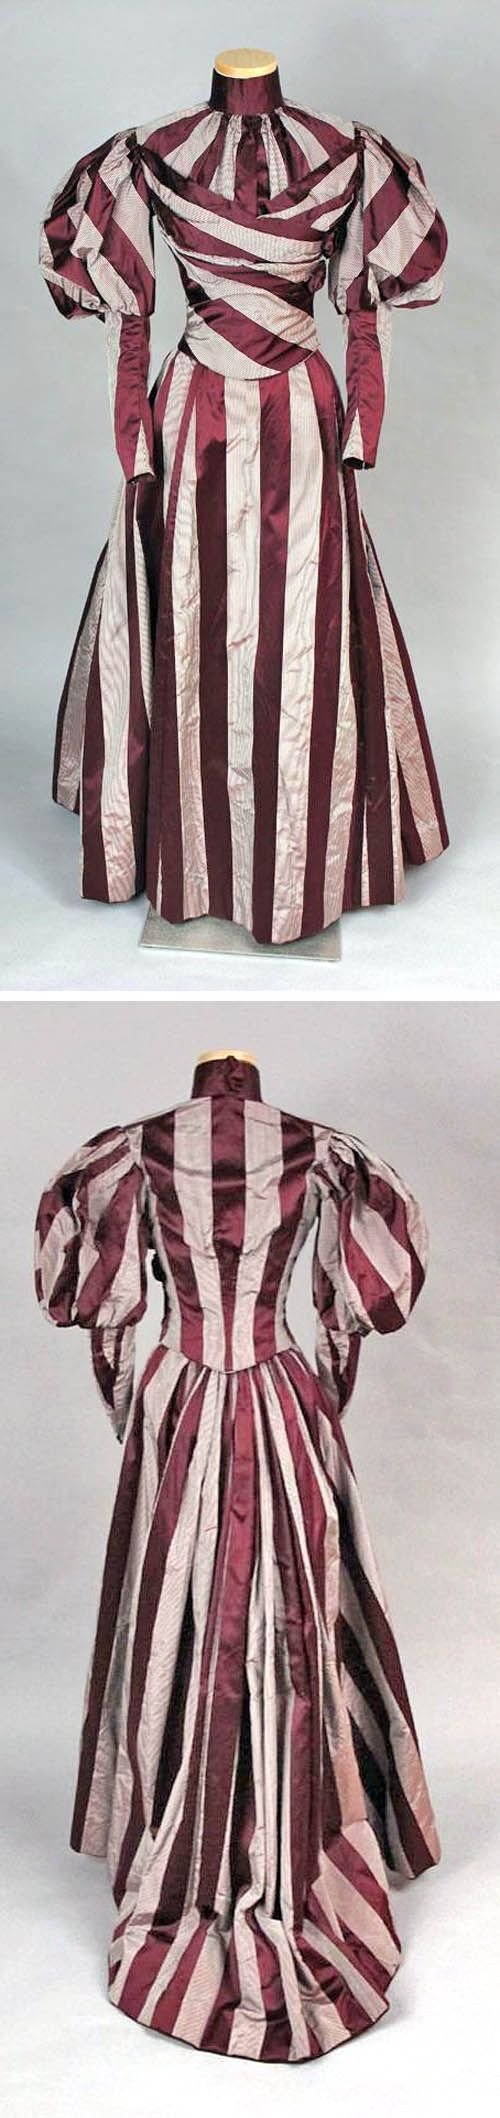 Two-piece day dress, ca. 1897. Maroon silk satin with plain-woven stripes of thin white & black stripes lined with tan cotton. Closely fitted, with boned seams & darts. Skirt has very narrow pleats every few inches for ease of movement; pocket in rear right seam. emuseum of the Connecticut Historical Society 1945.1.1115ab: